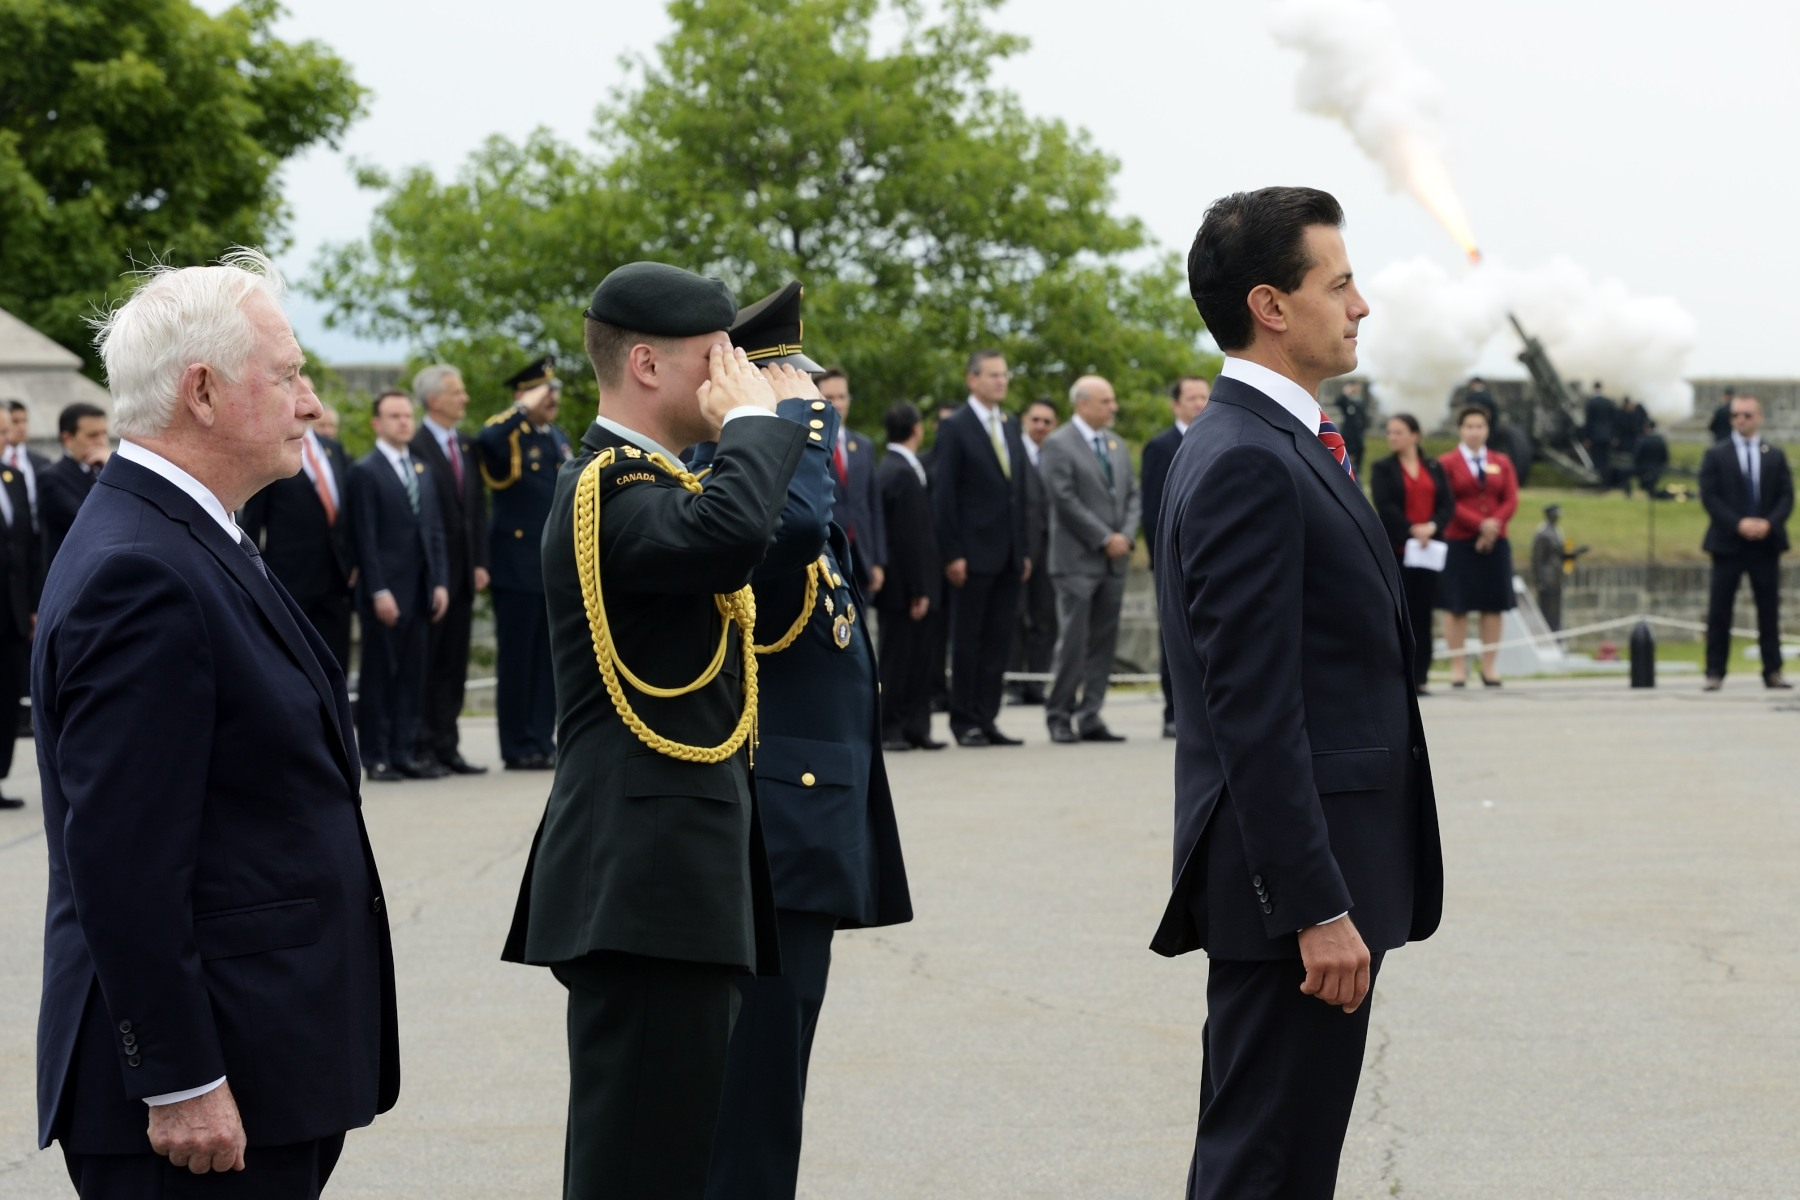 President Enrique Peña Nieto and the Governor General received a 21-gun salute from the 5th Light Artillery Regiment of Canada.